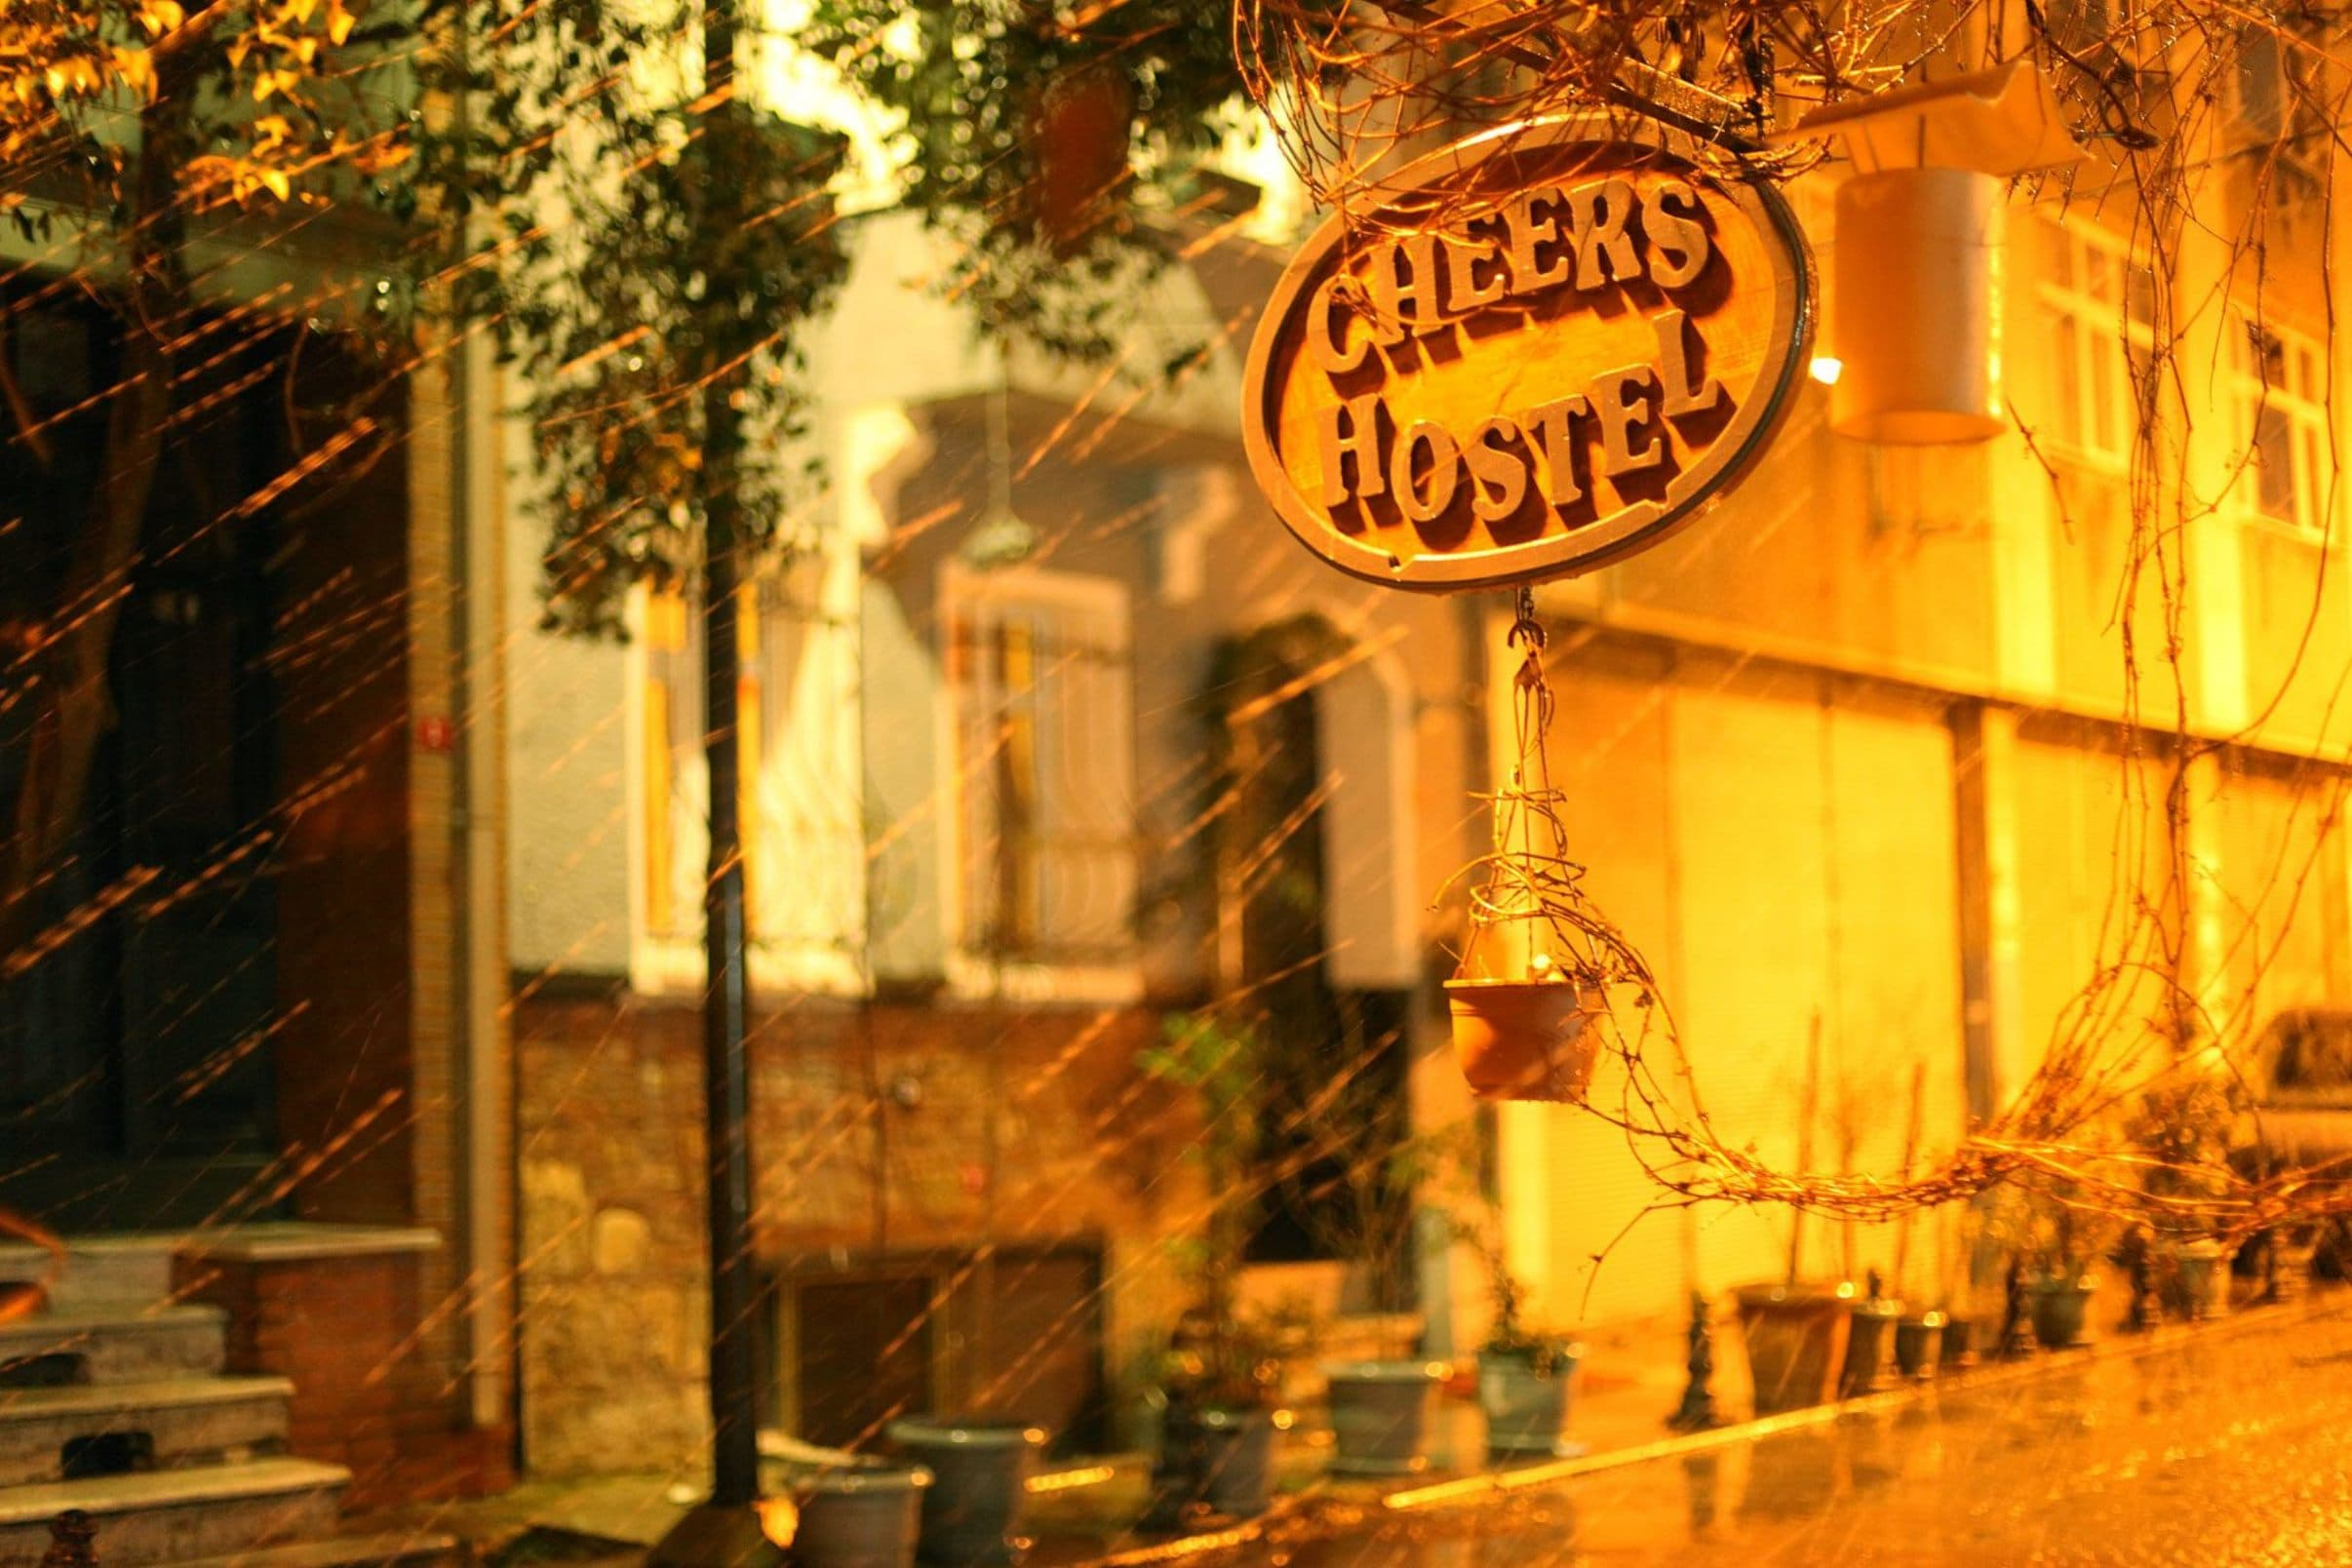 HOSTEL - Cheers Printhouse